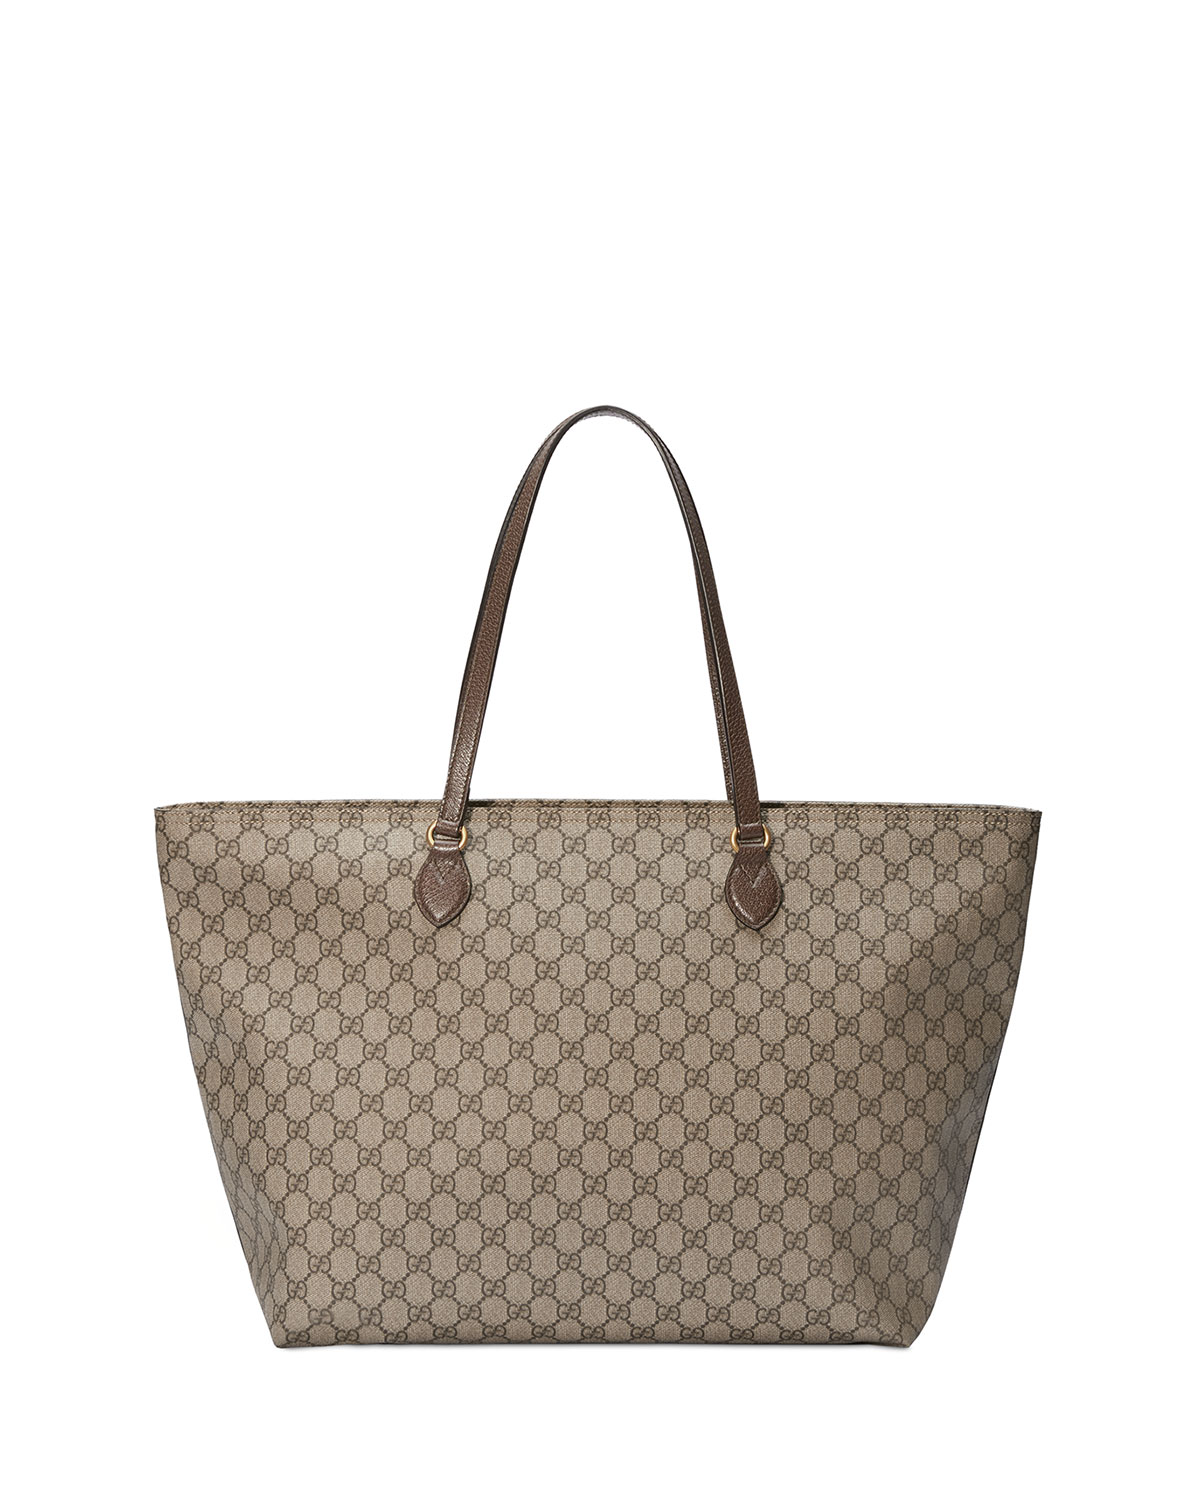 201e113fab32 Gucci Ophidia Medium Soft GG Supreme Canvas Tote Bag | Neiman Marcus